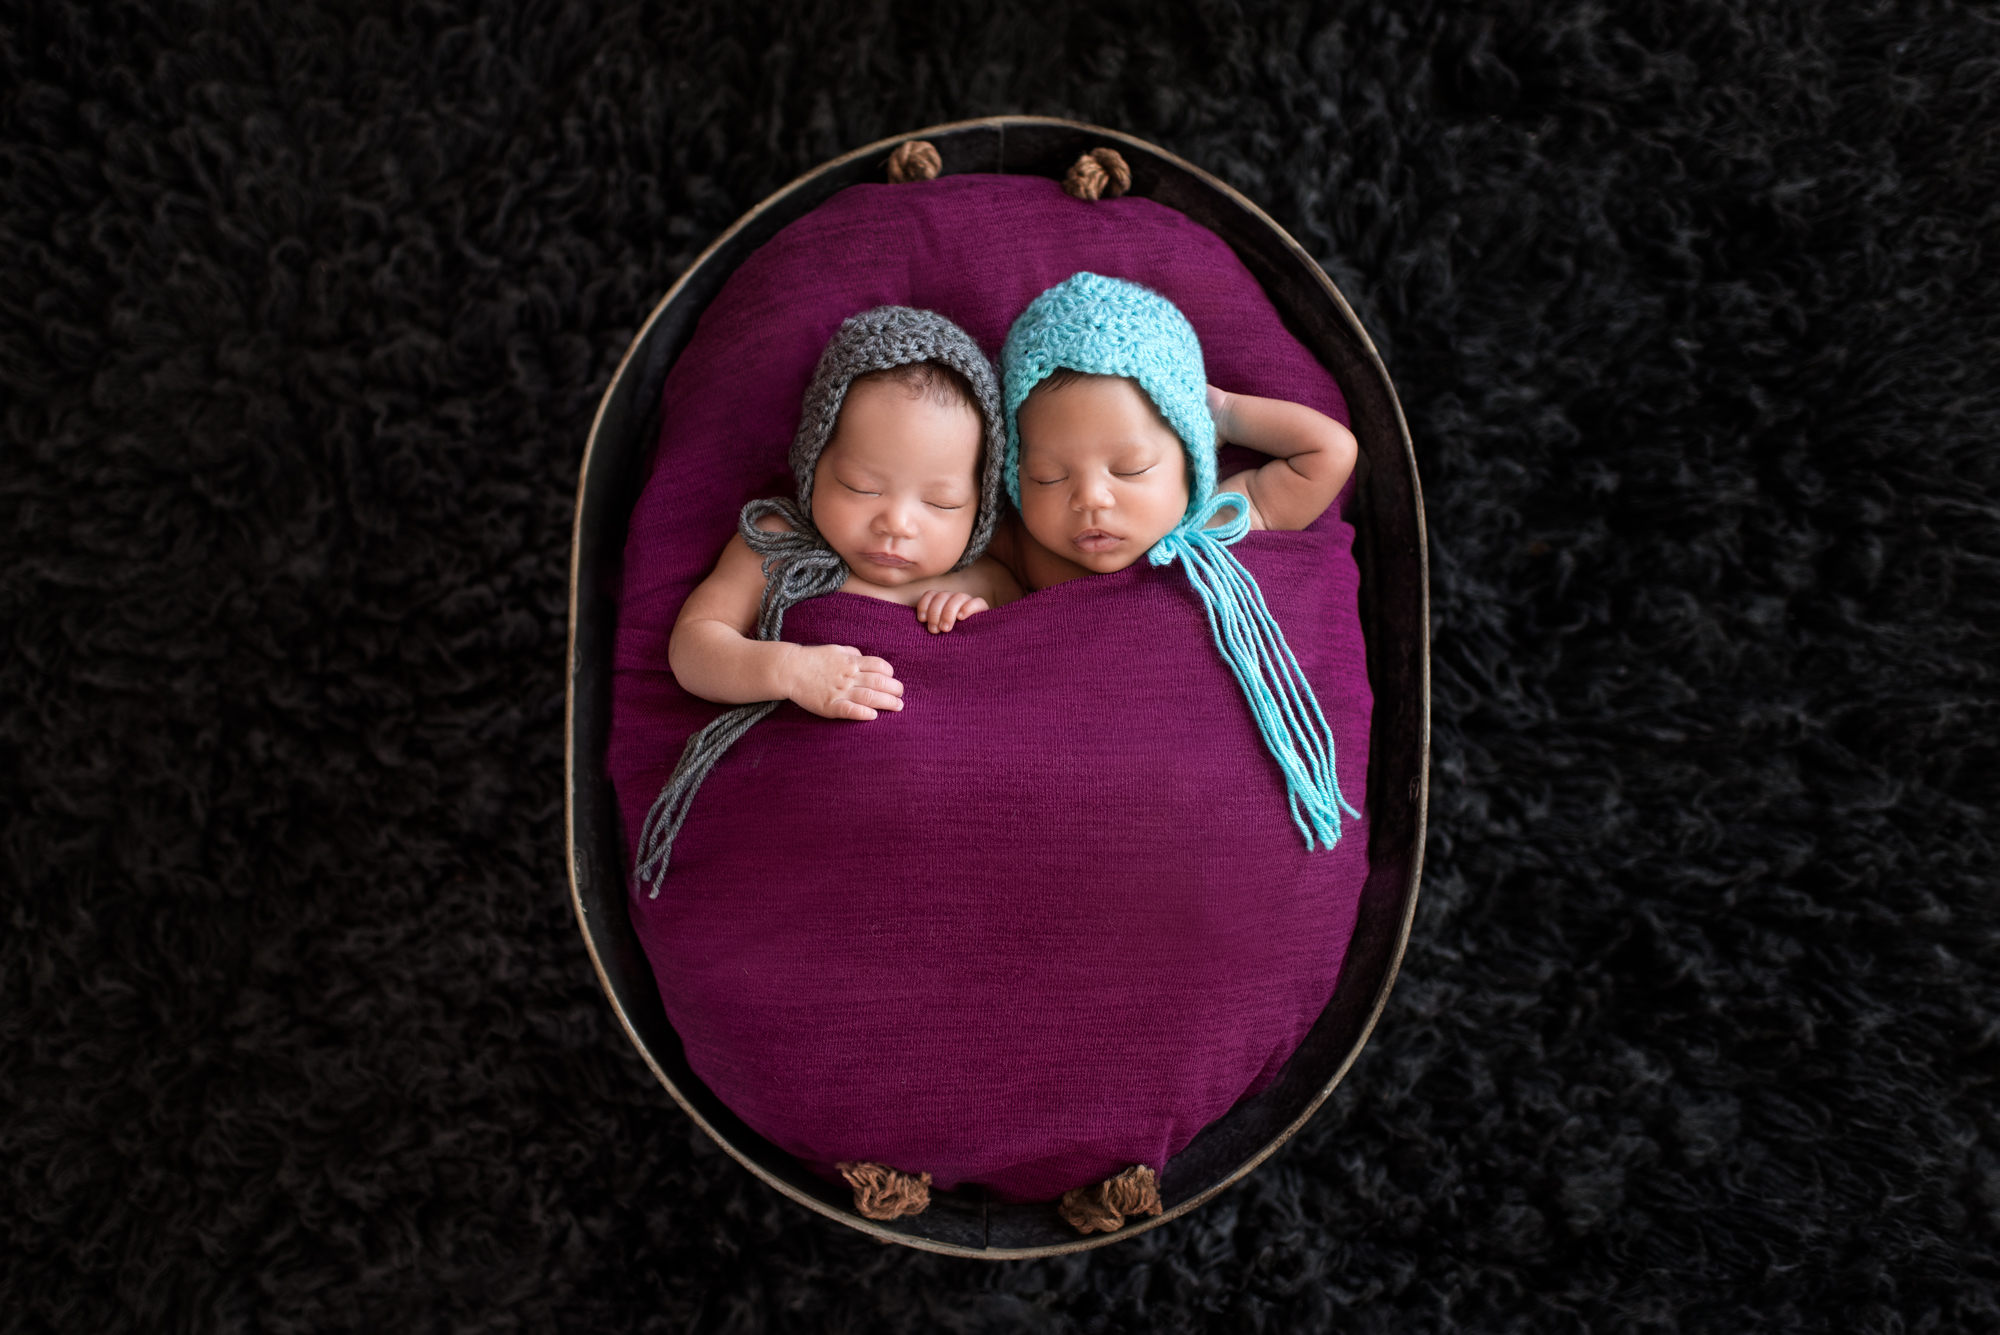 04_simpson_twins_nb__D756473-Edit.jpg